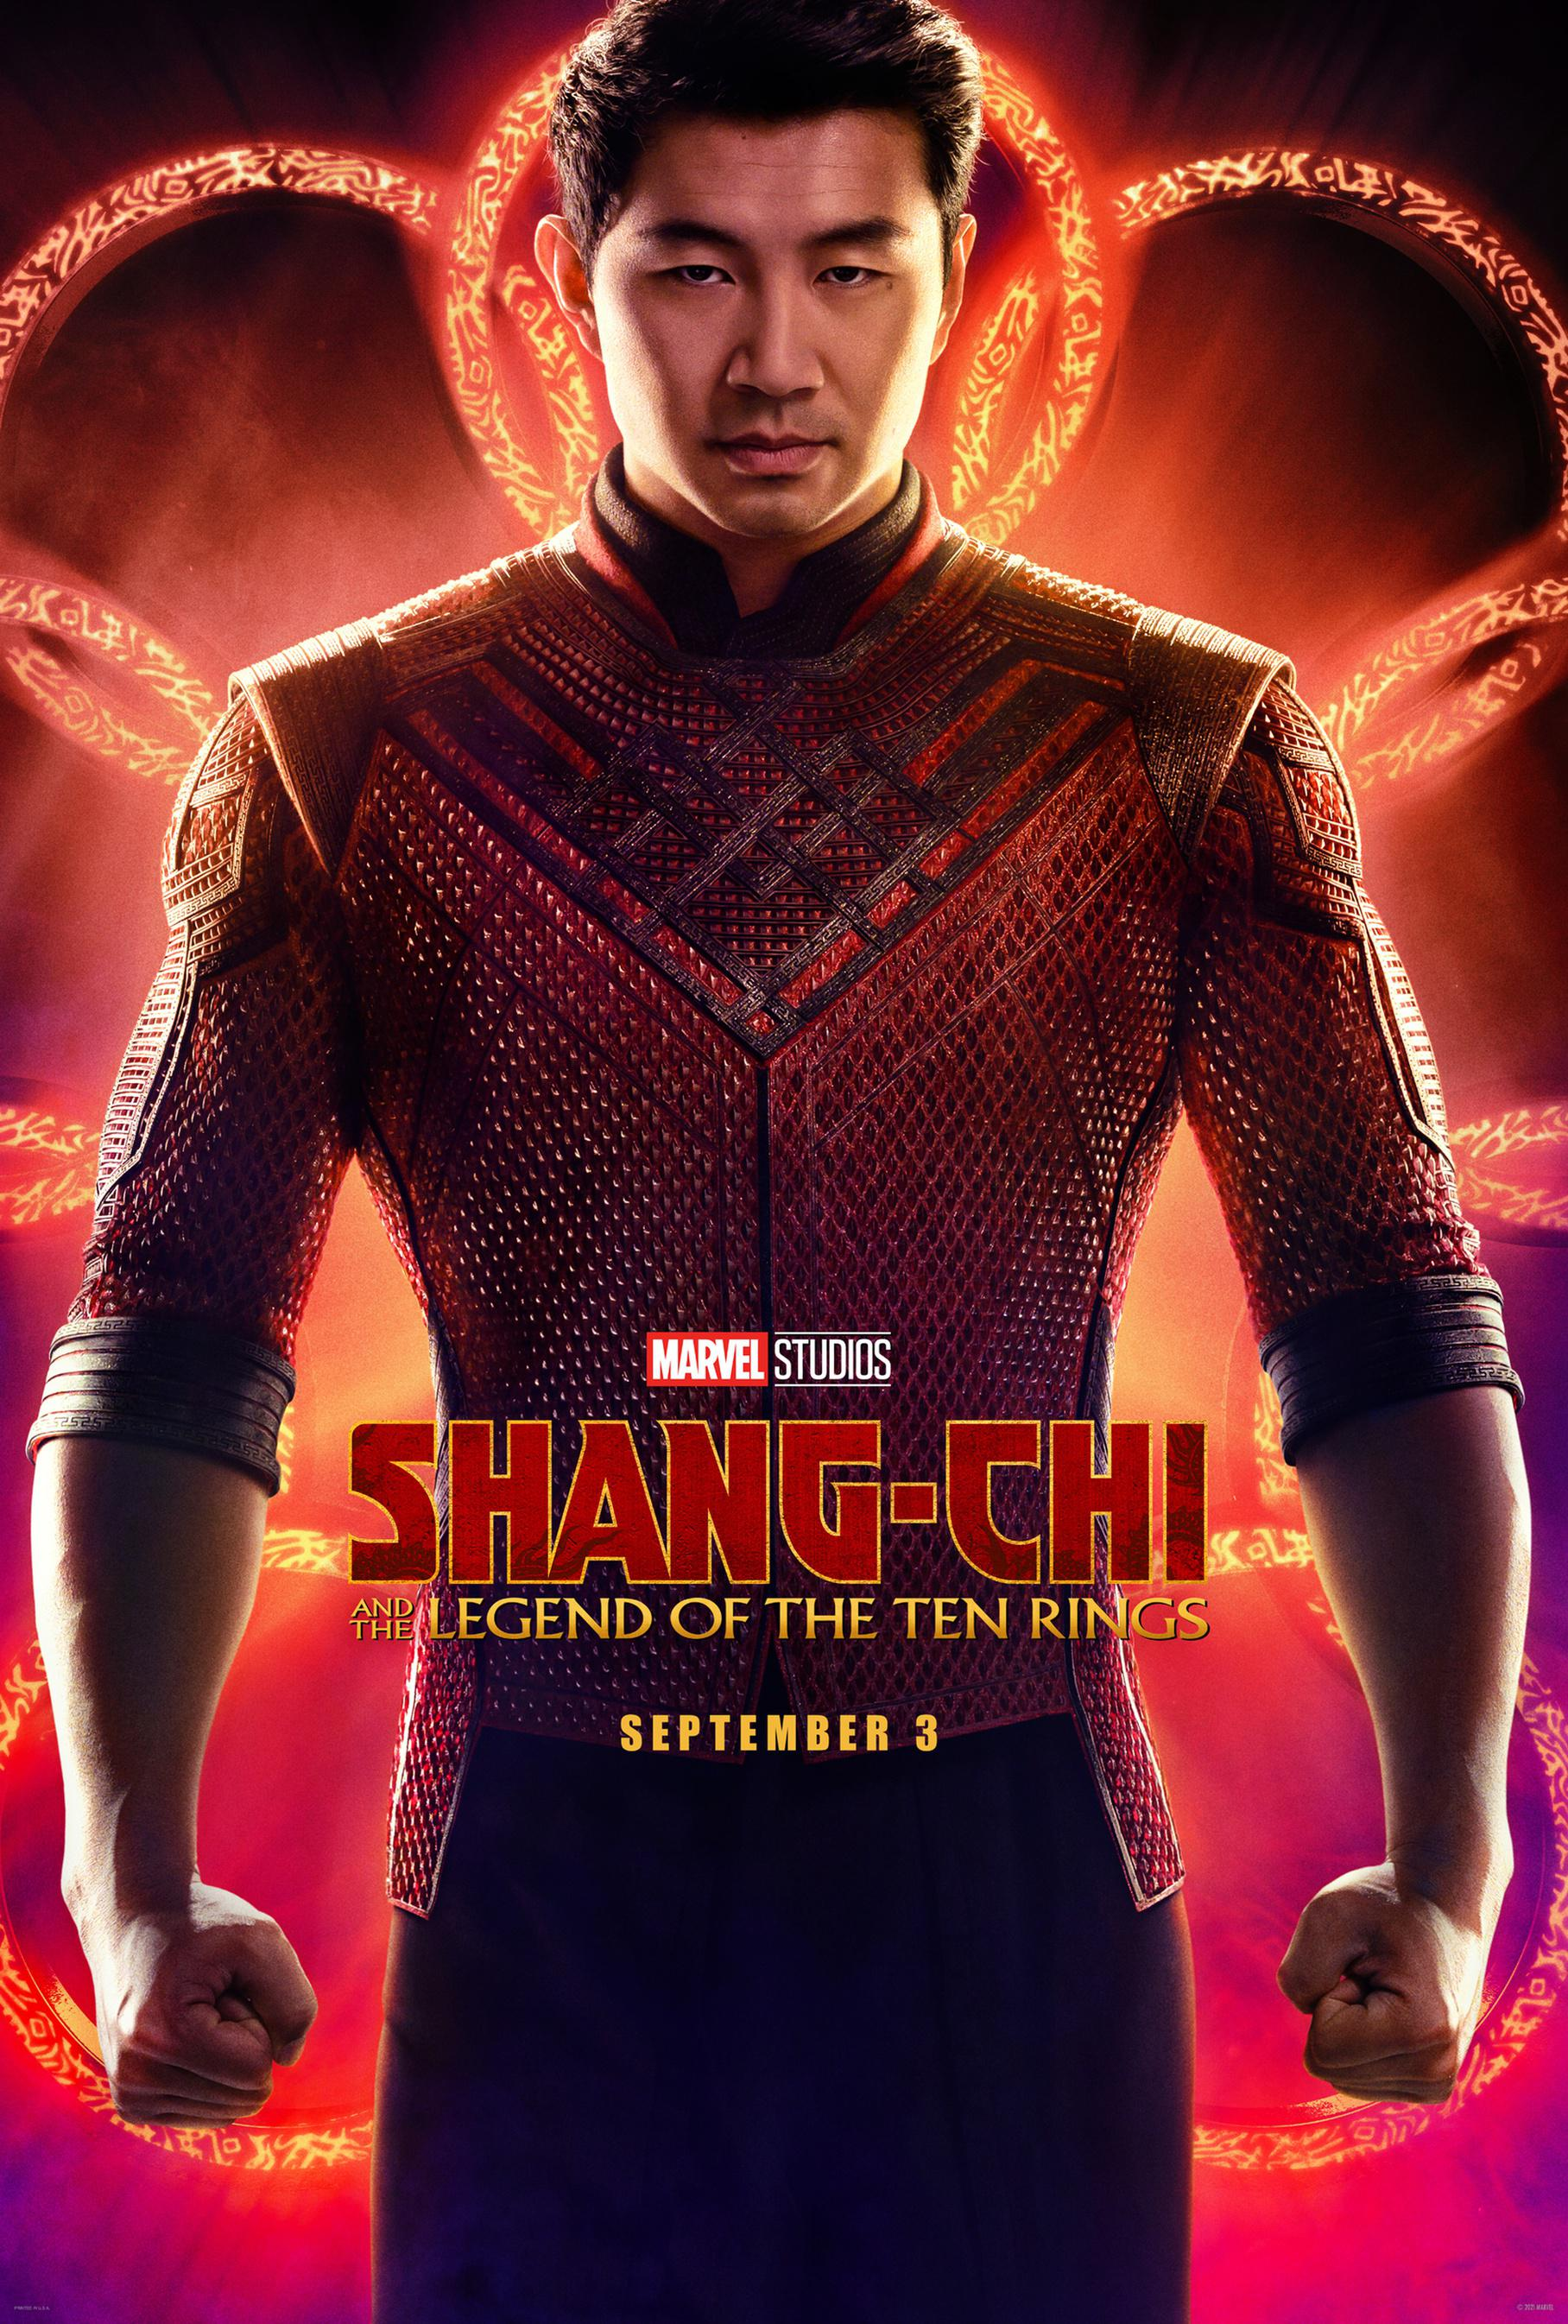 'Shang-Chi and the Legend of the Ten Rings'